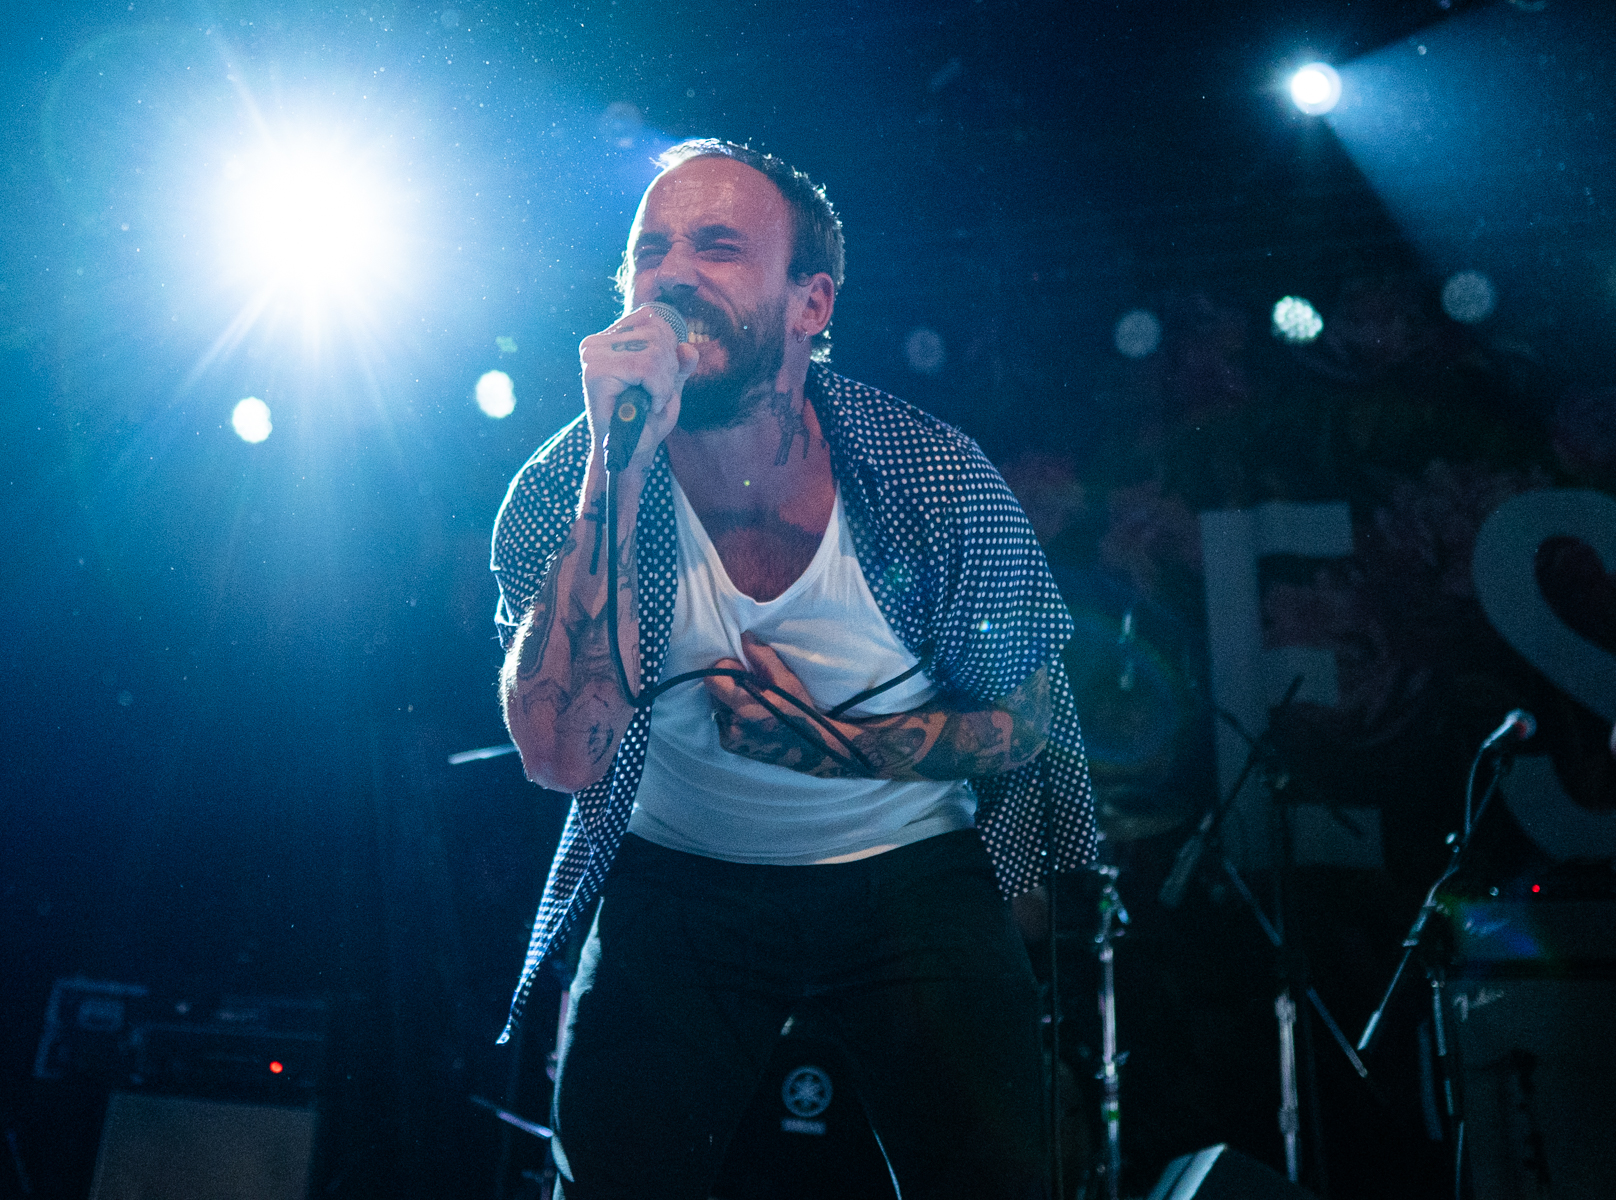 Idles_FirstAvenue_080319_Chris_Goyette_14